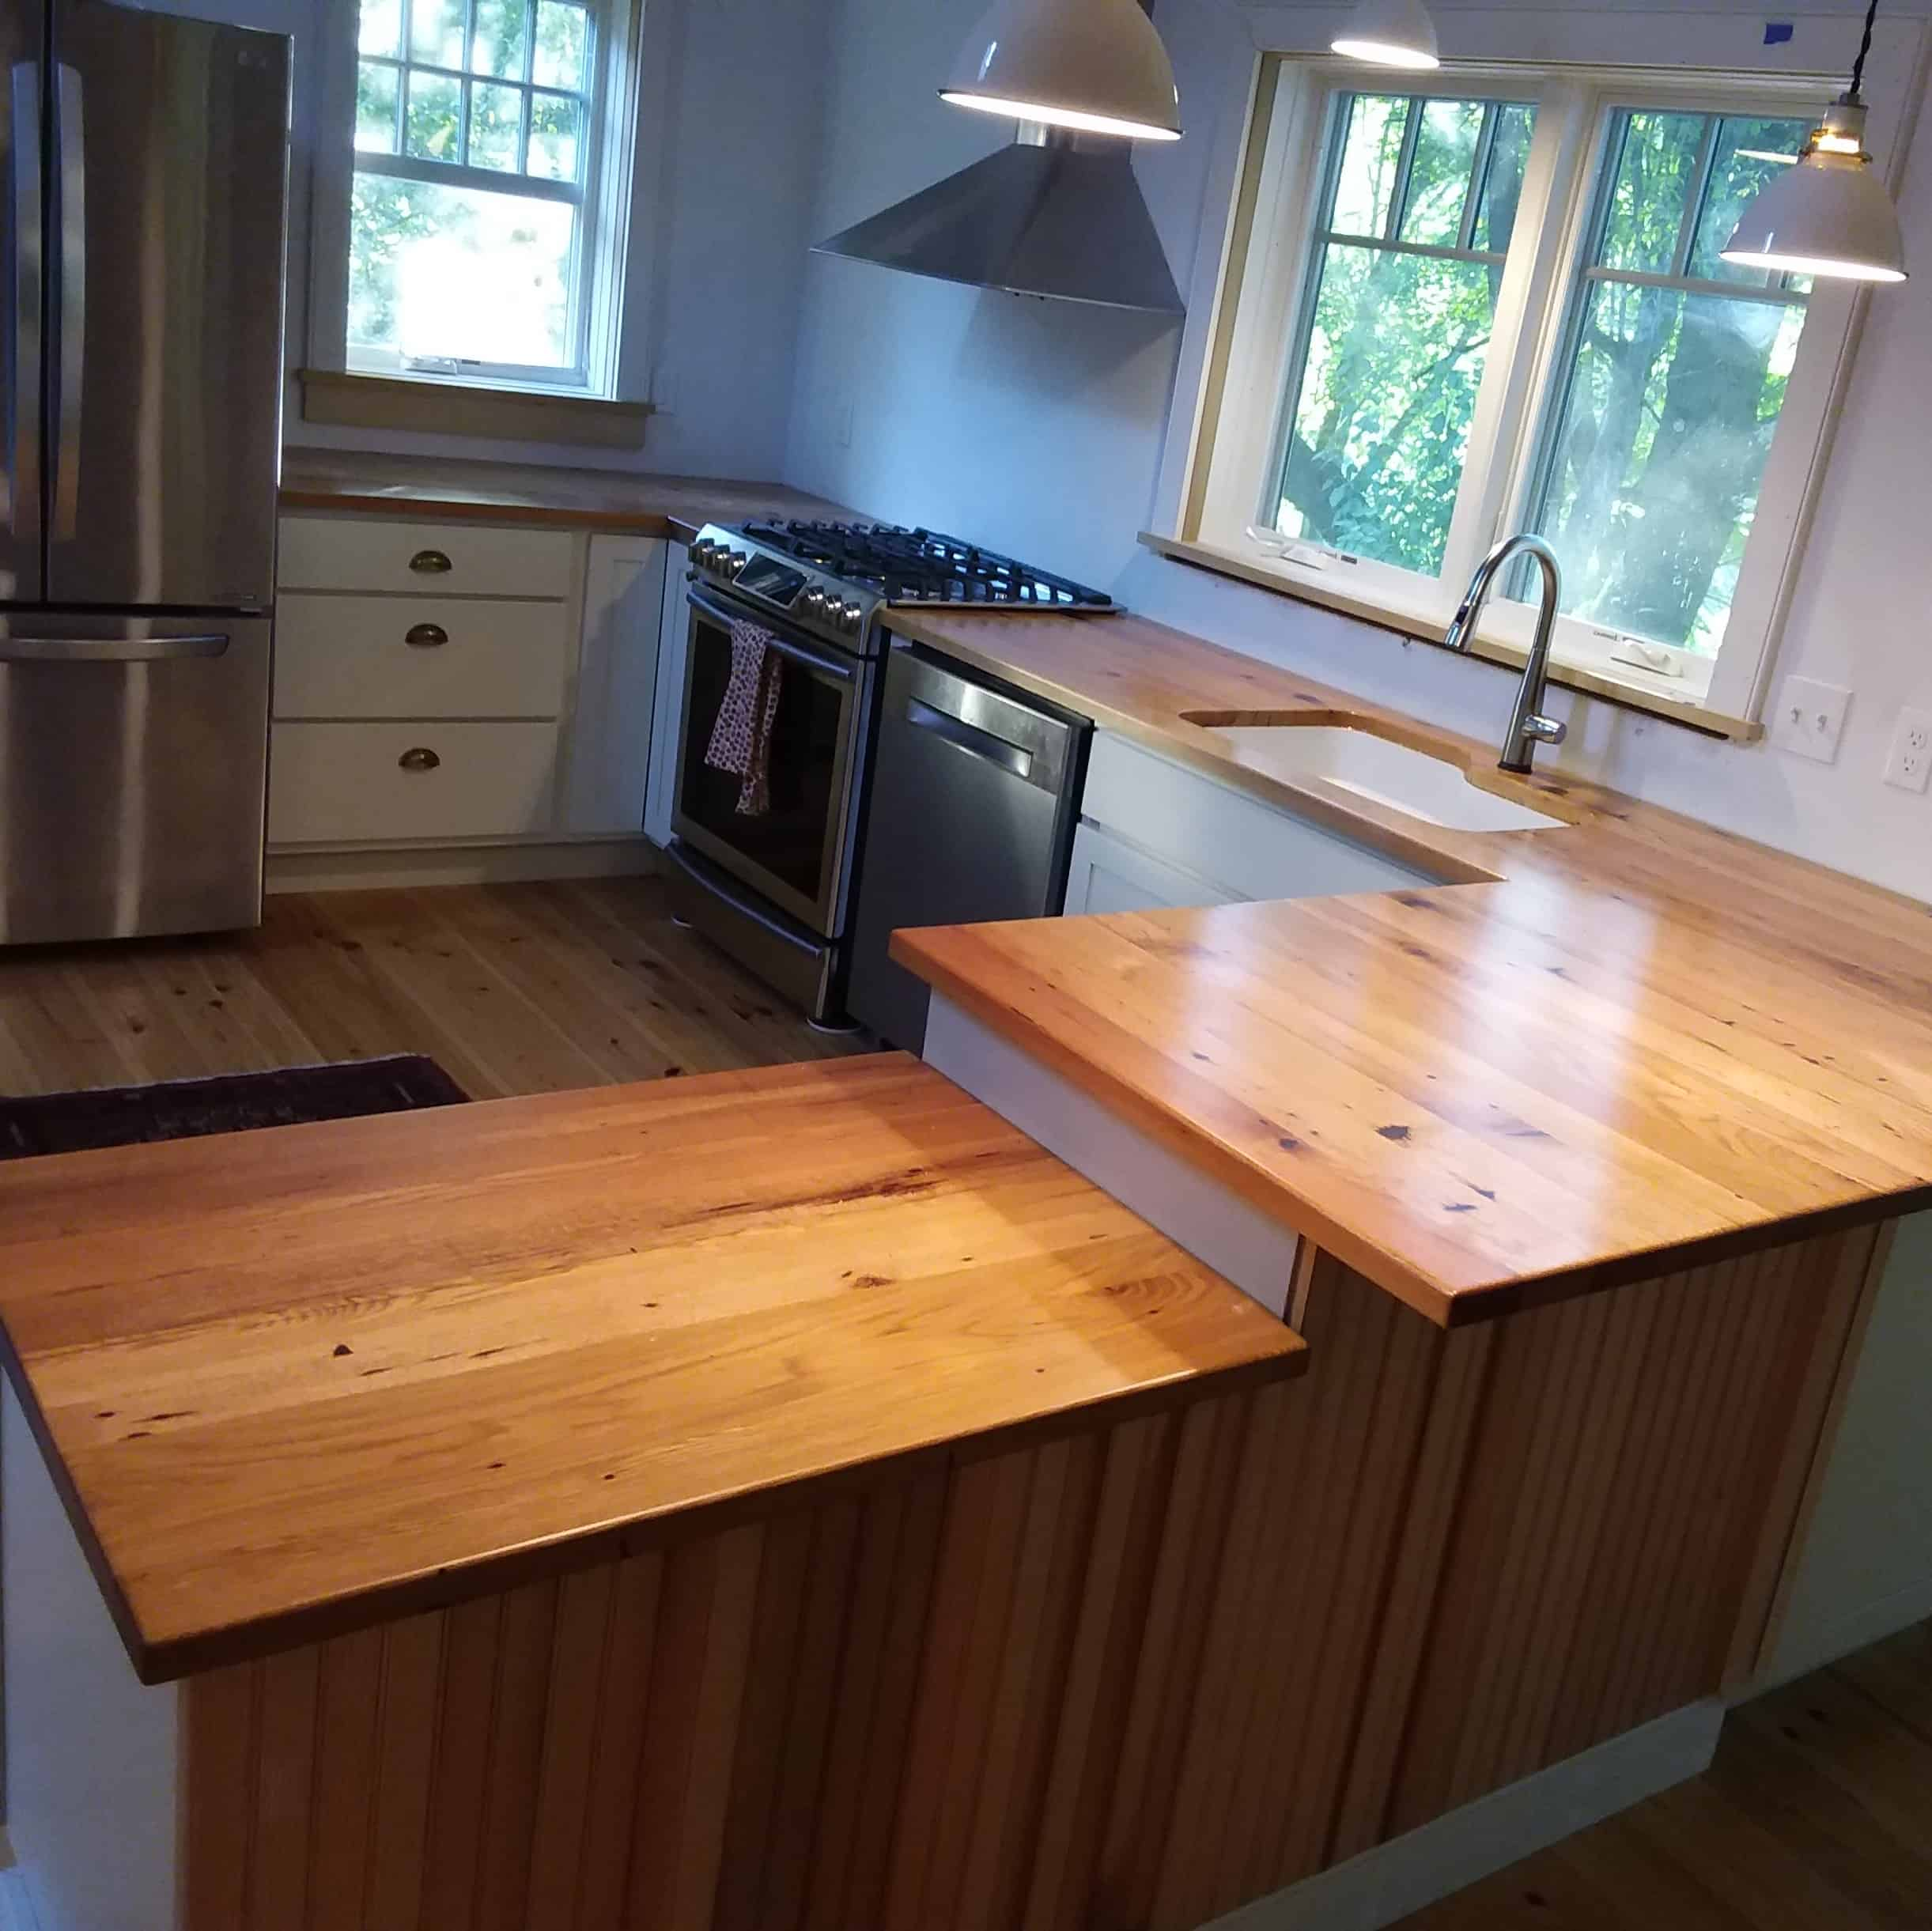 How To Waterproof Wood Countertop New England Wood Countertops 15 Years Of Custom Waterproof Tops